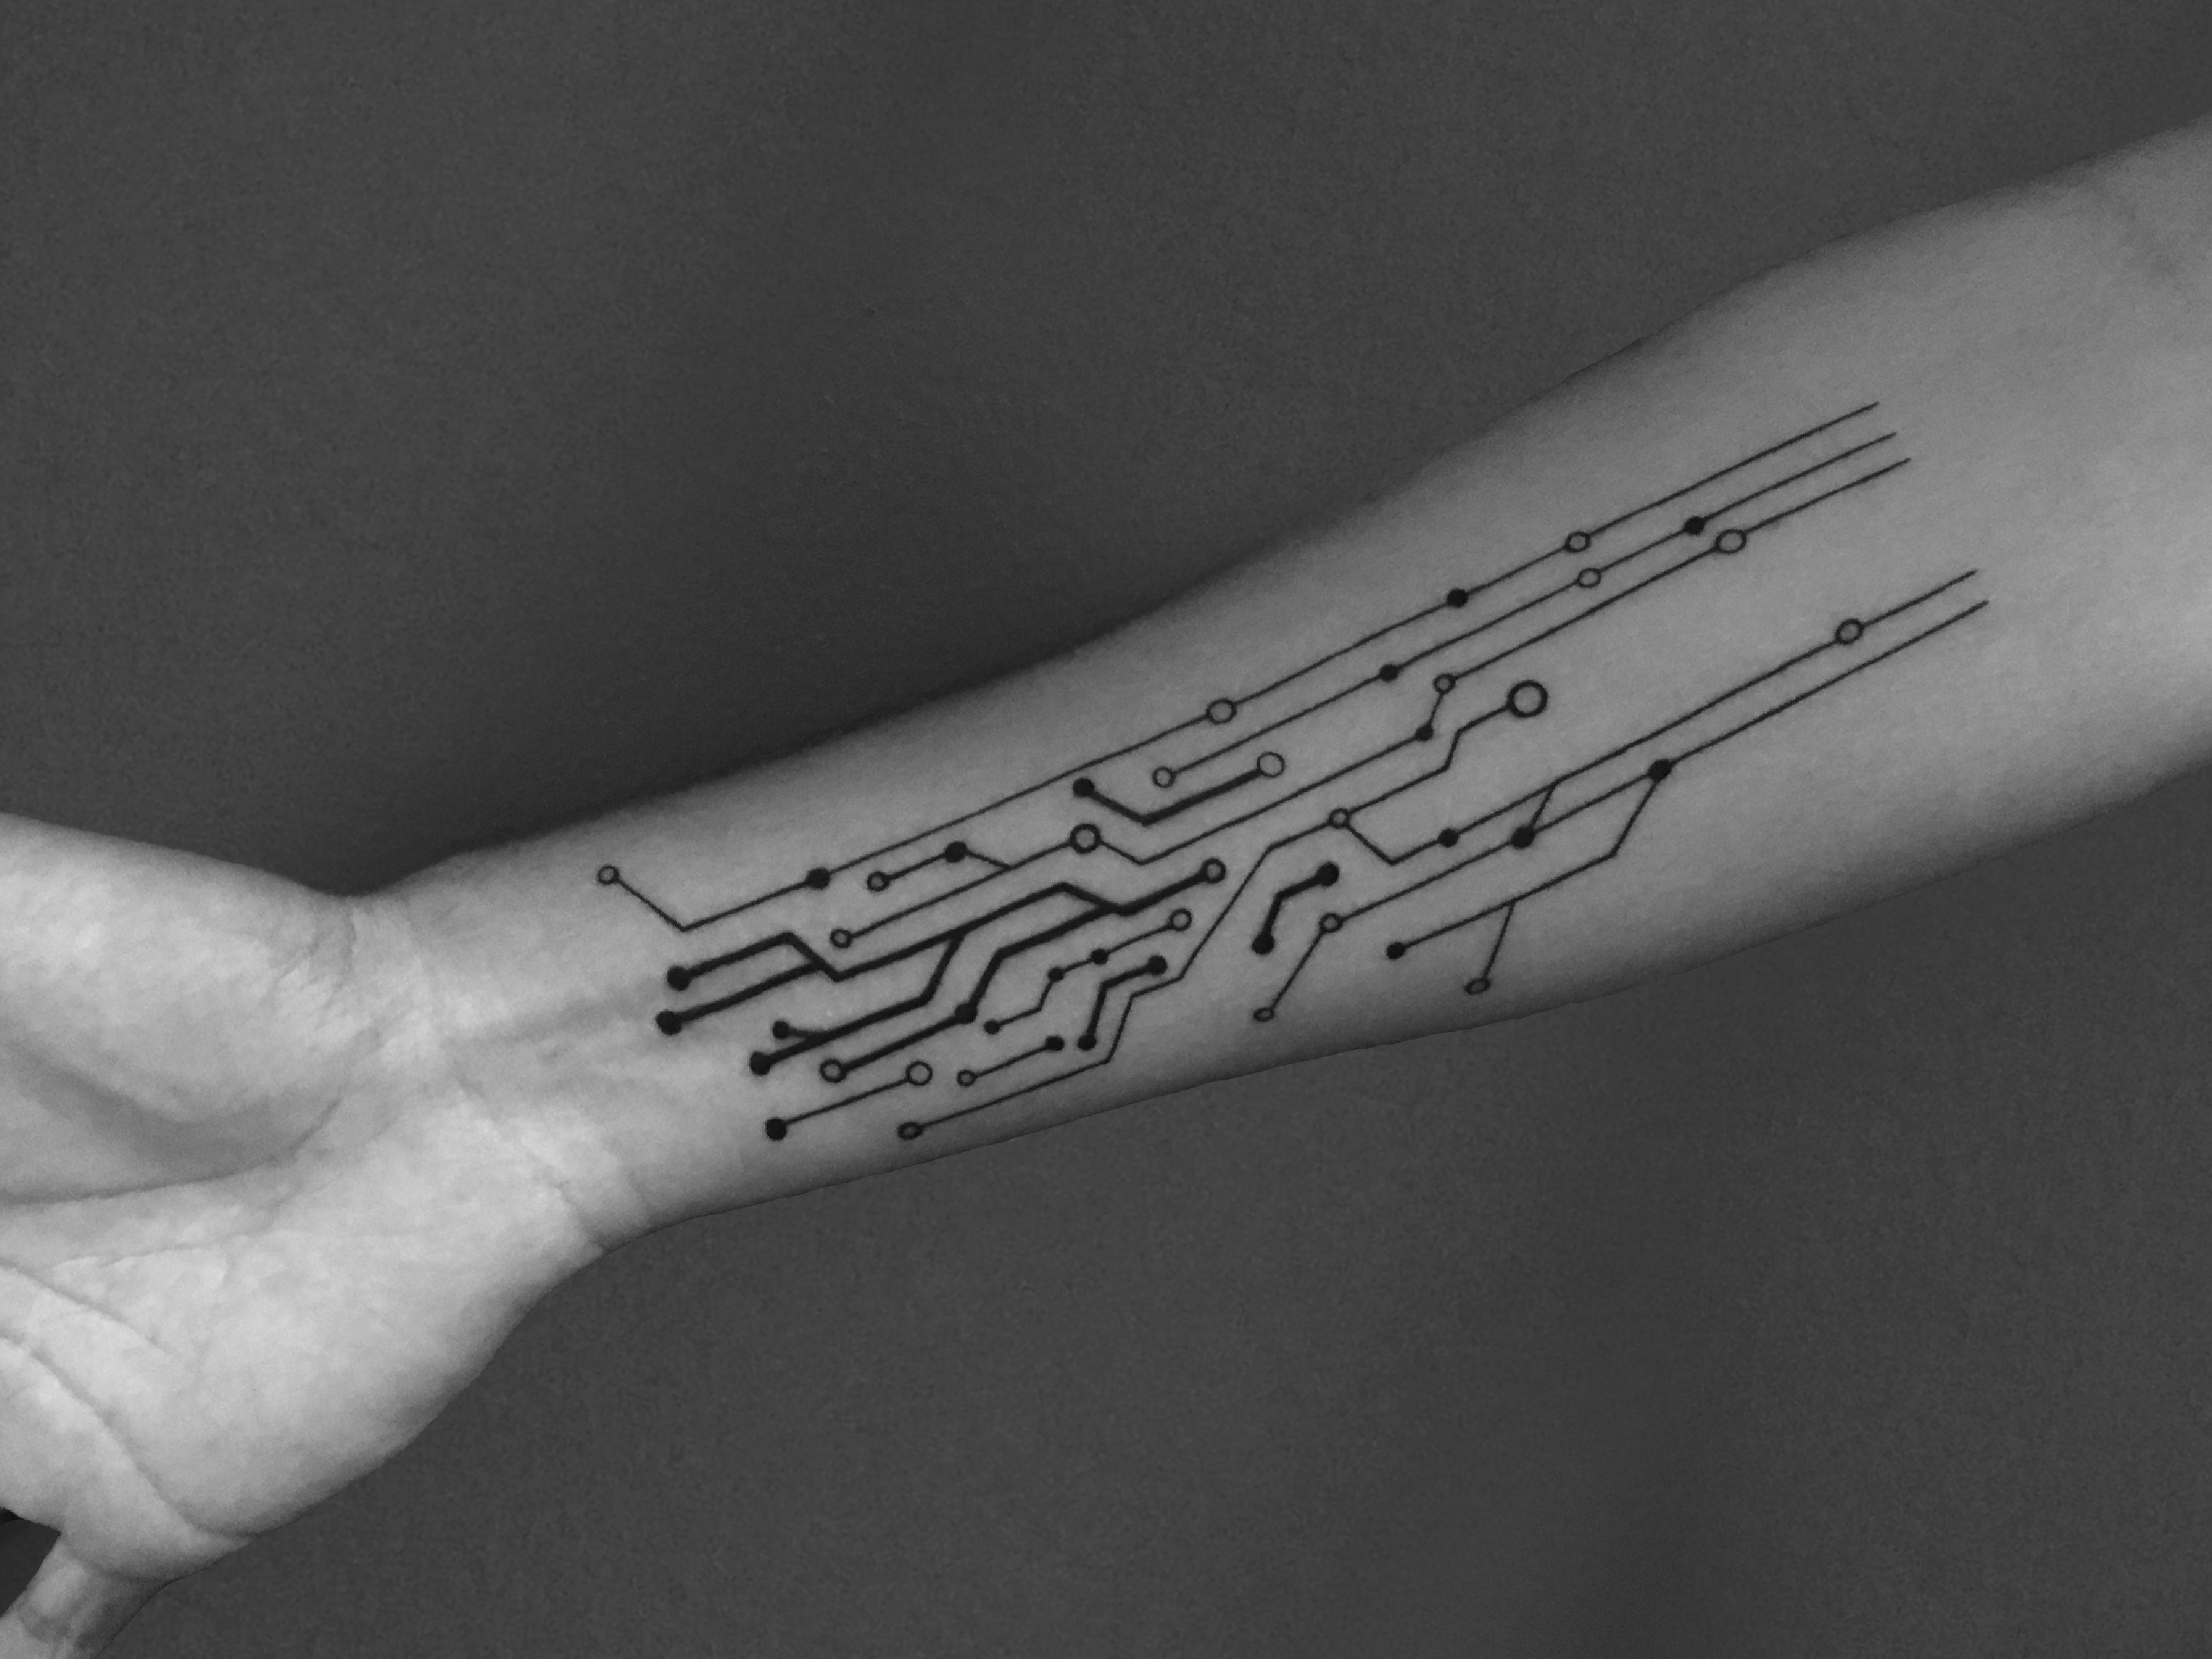 Circuit Tattoo Done By Clark Seiger Kings Avenue Vector Tree Stock Photo Image 34279490 Massapequa Ny